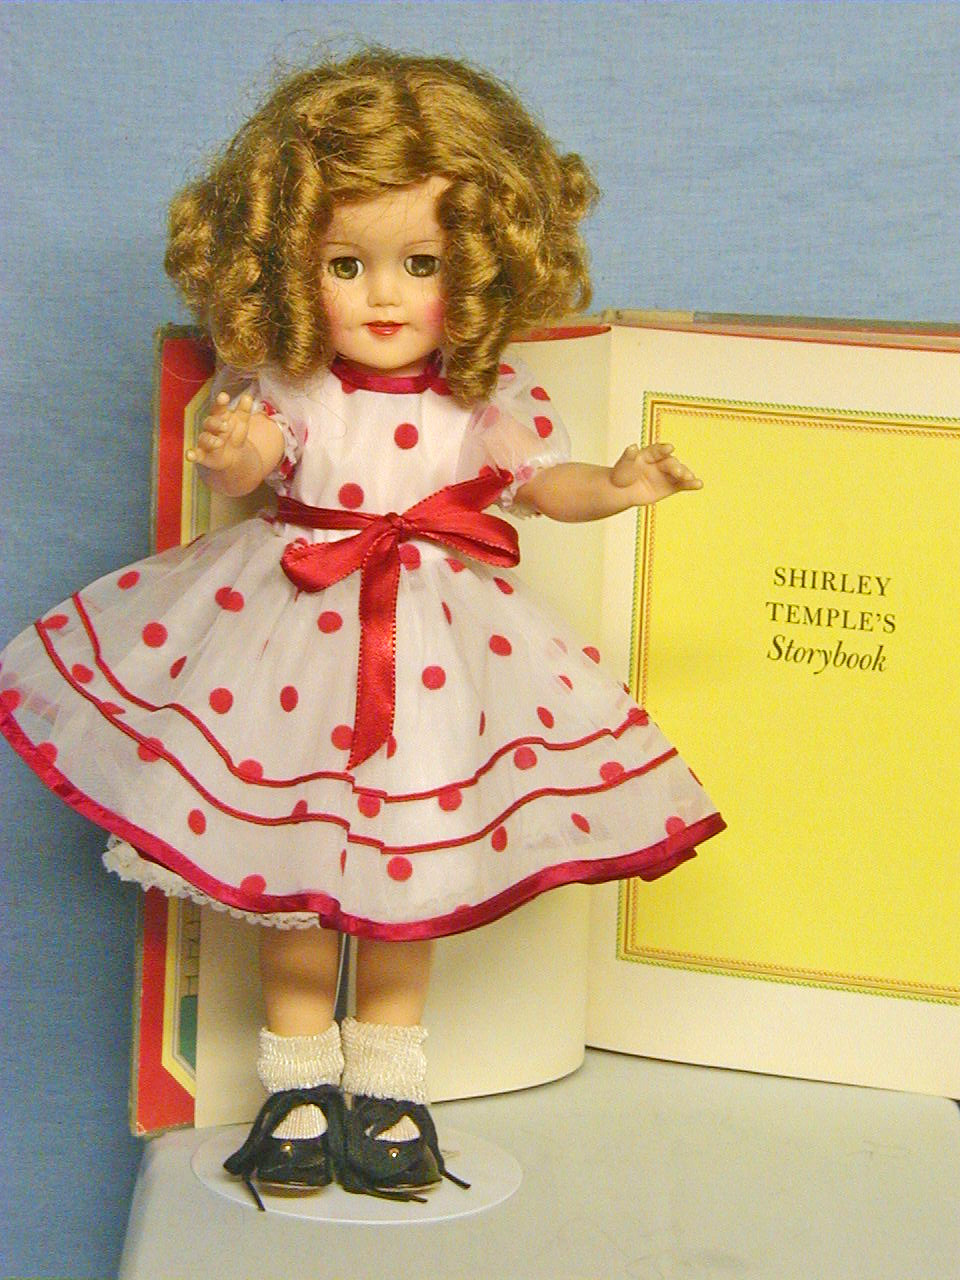 Shirley Temple Doll with Shirley's book of Fairytales - Ideal Doll - 15""